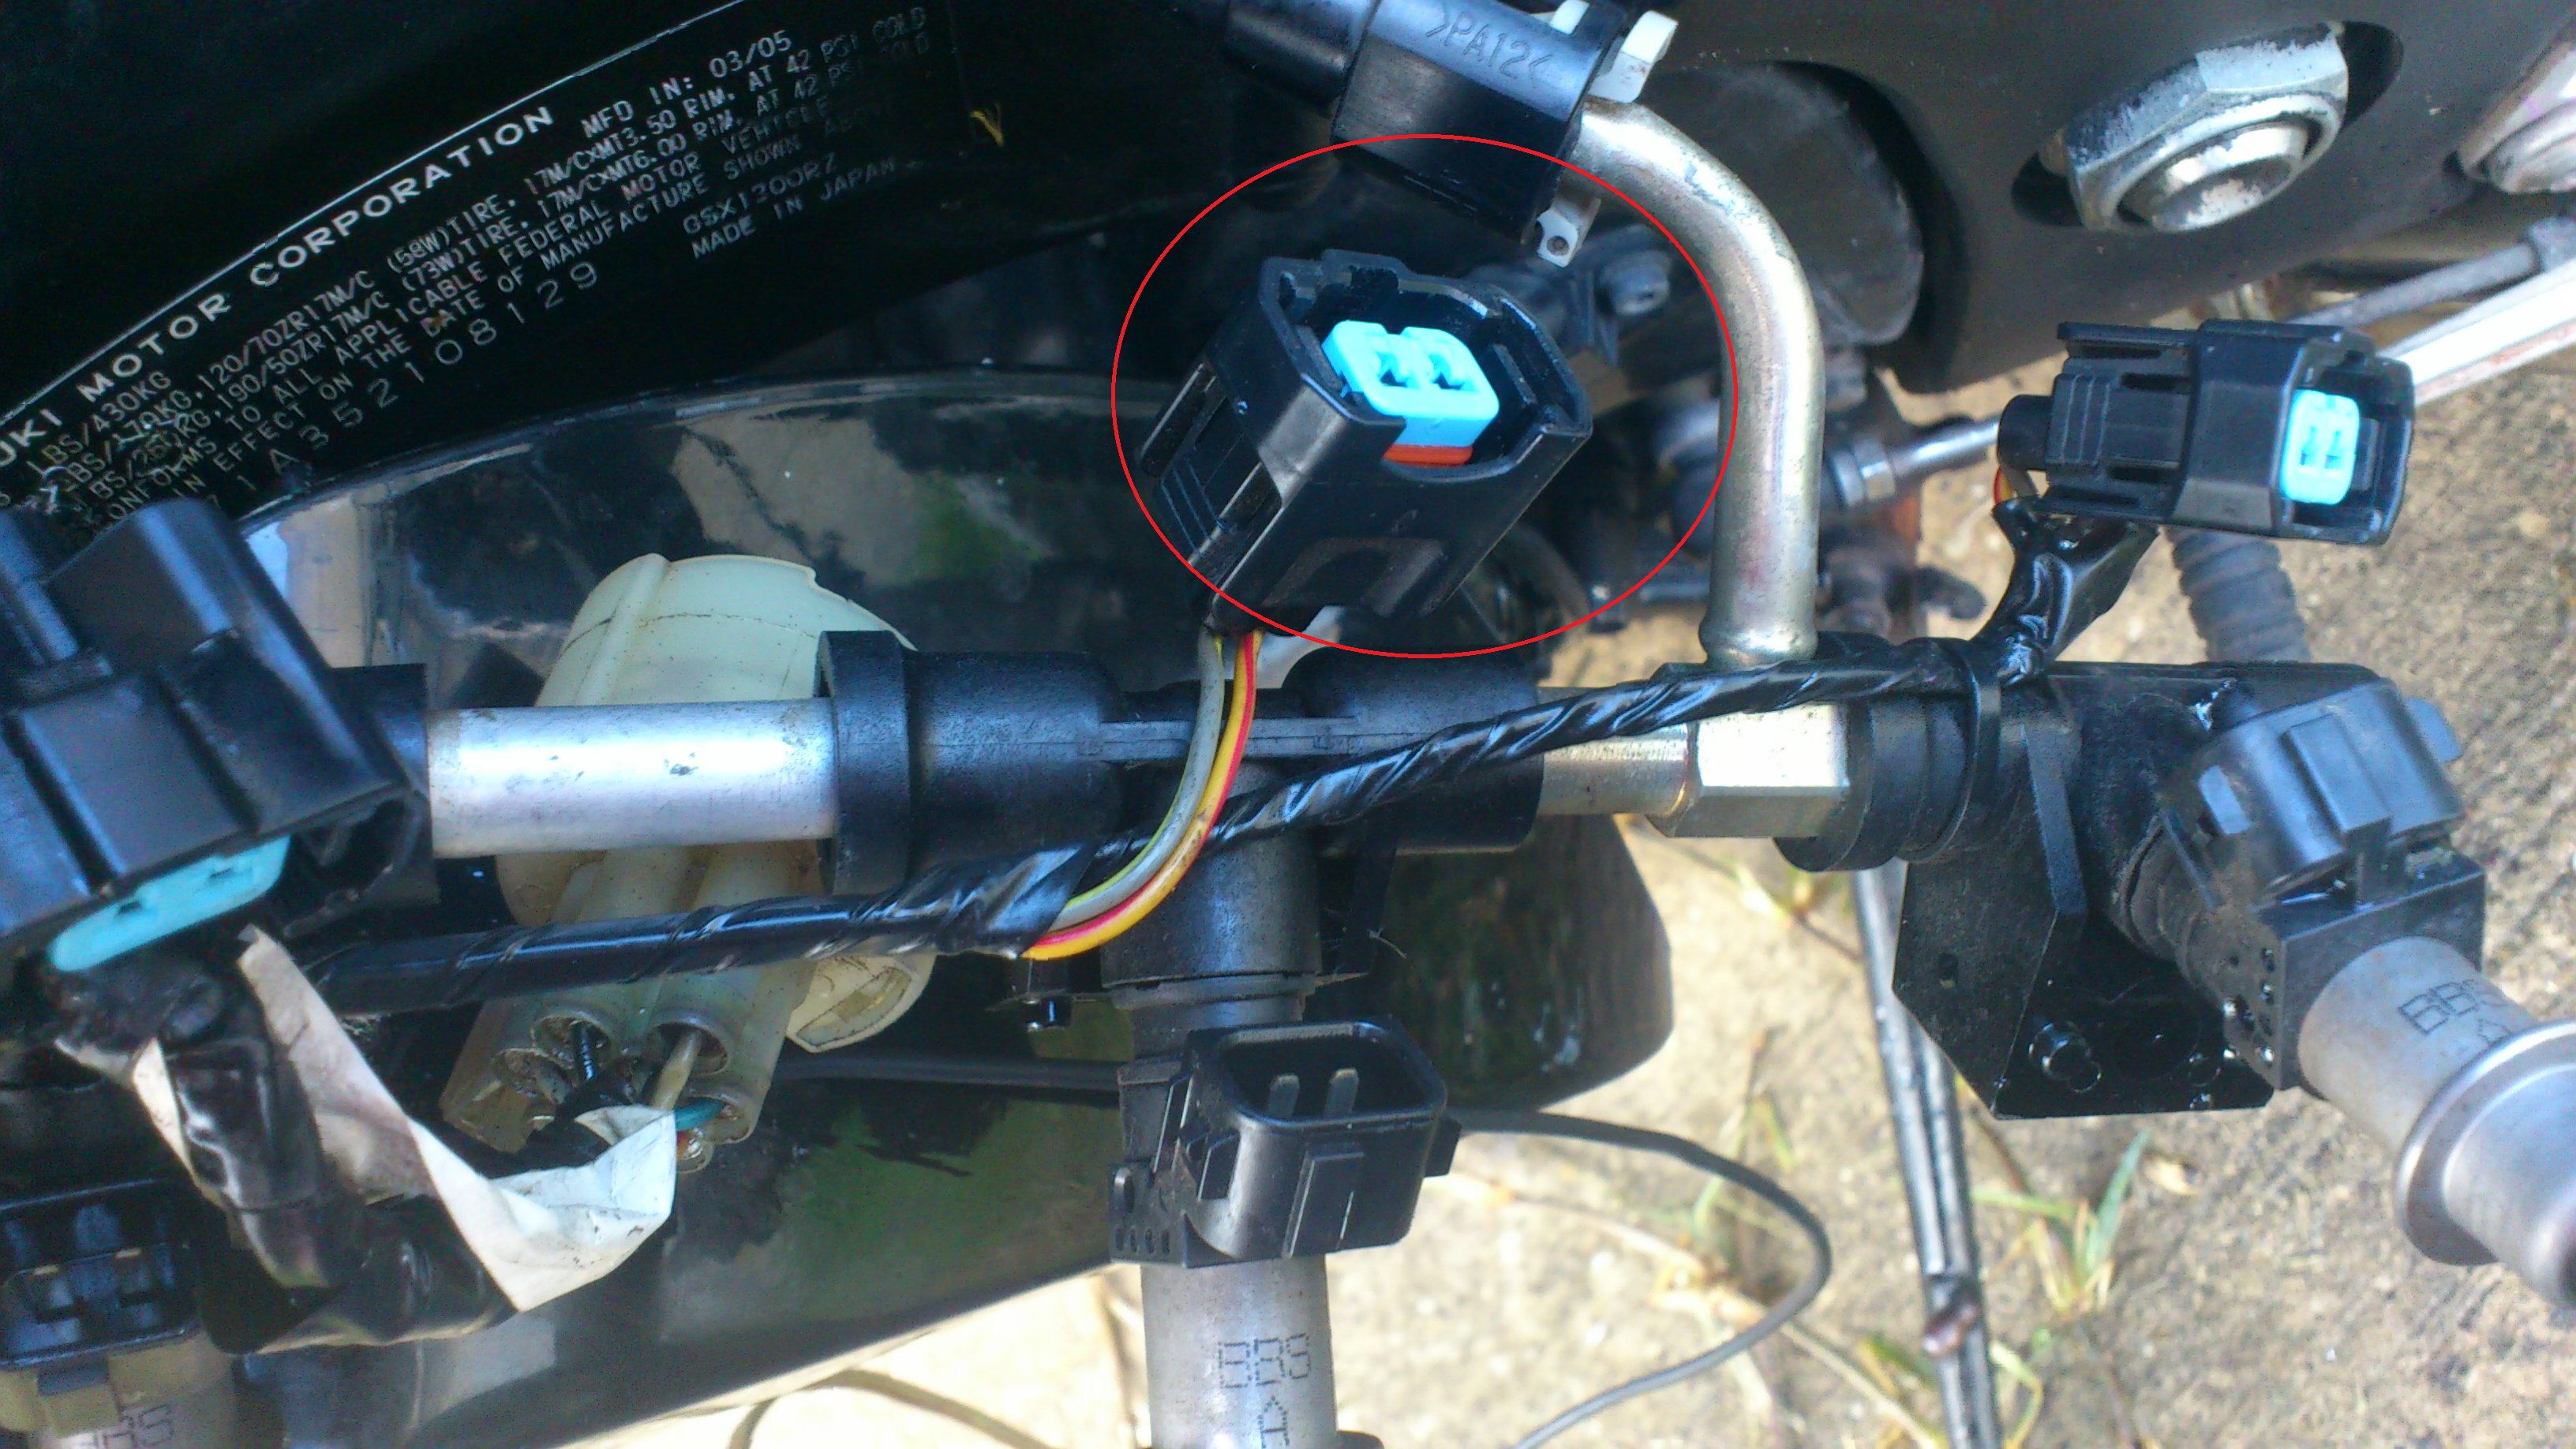 2012 01 16_140634_2 my fuel injectors are not spraying any fuel causing my bike to 2006 hayabusa fuse box location at soozxer.org